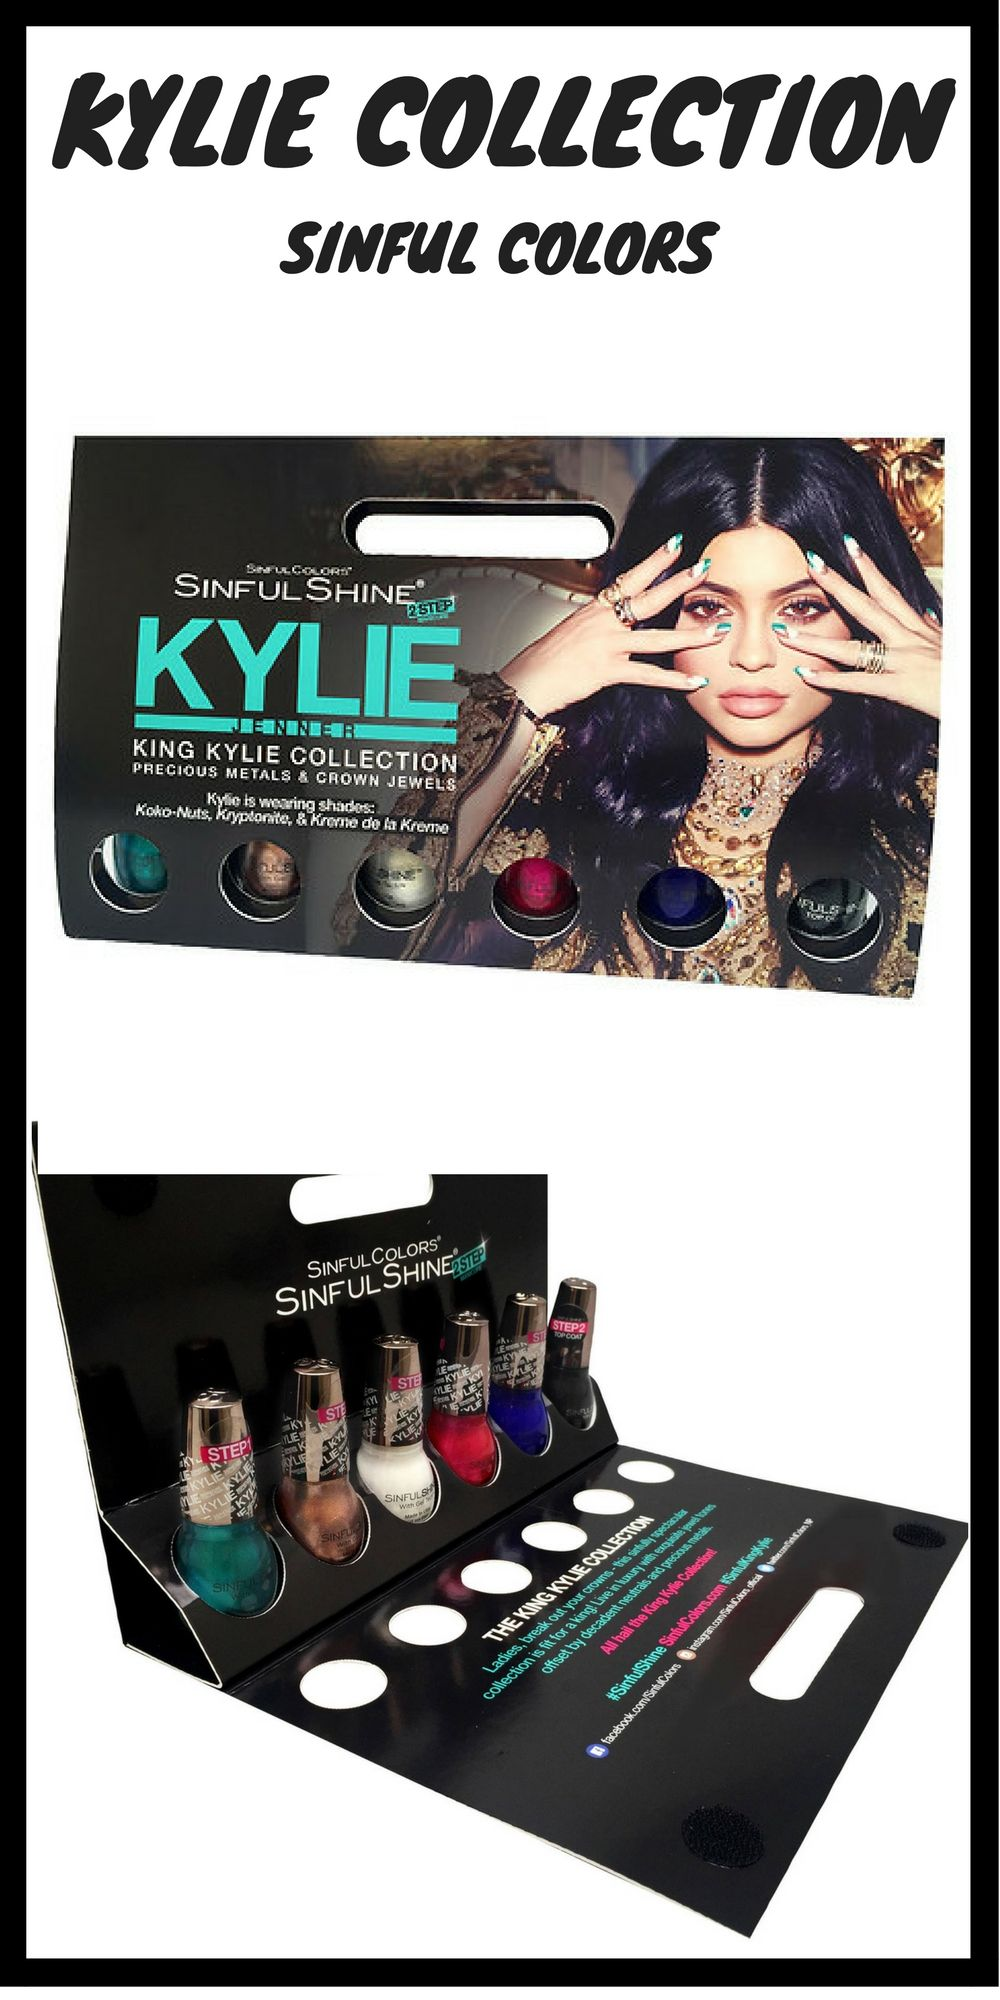 ad SinfulColors Kylie Jenner King Kylie Collection, nail polish ...